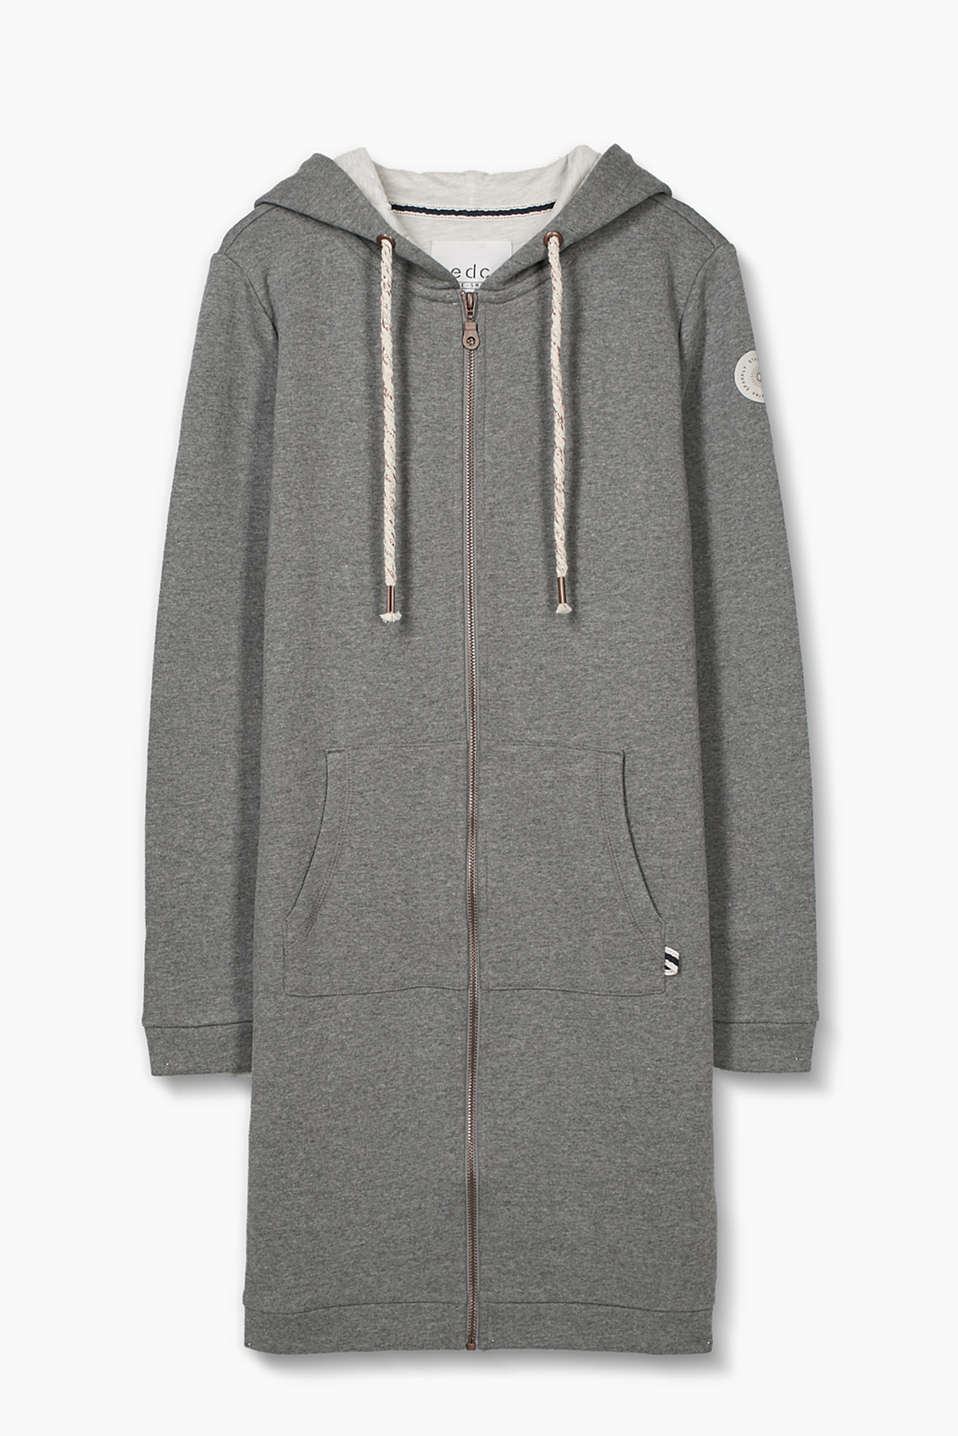 A comfy style for relaxed looks: long, melange zip-up sweatshirt in blended cotton